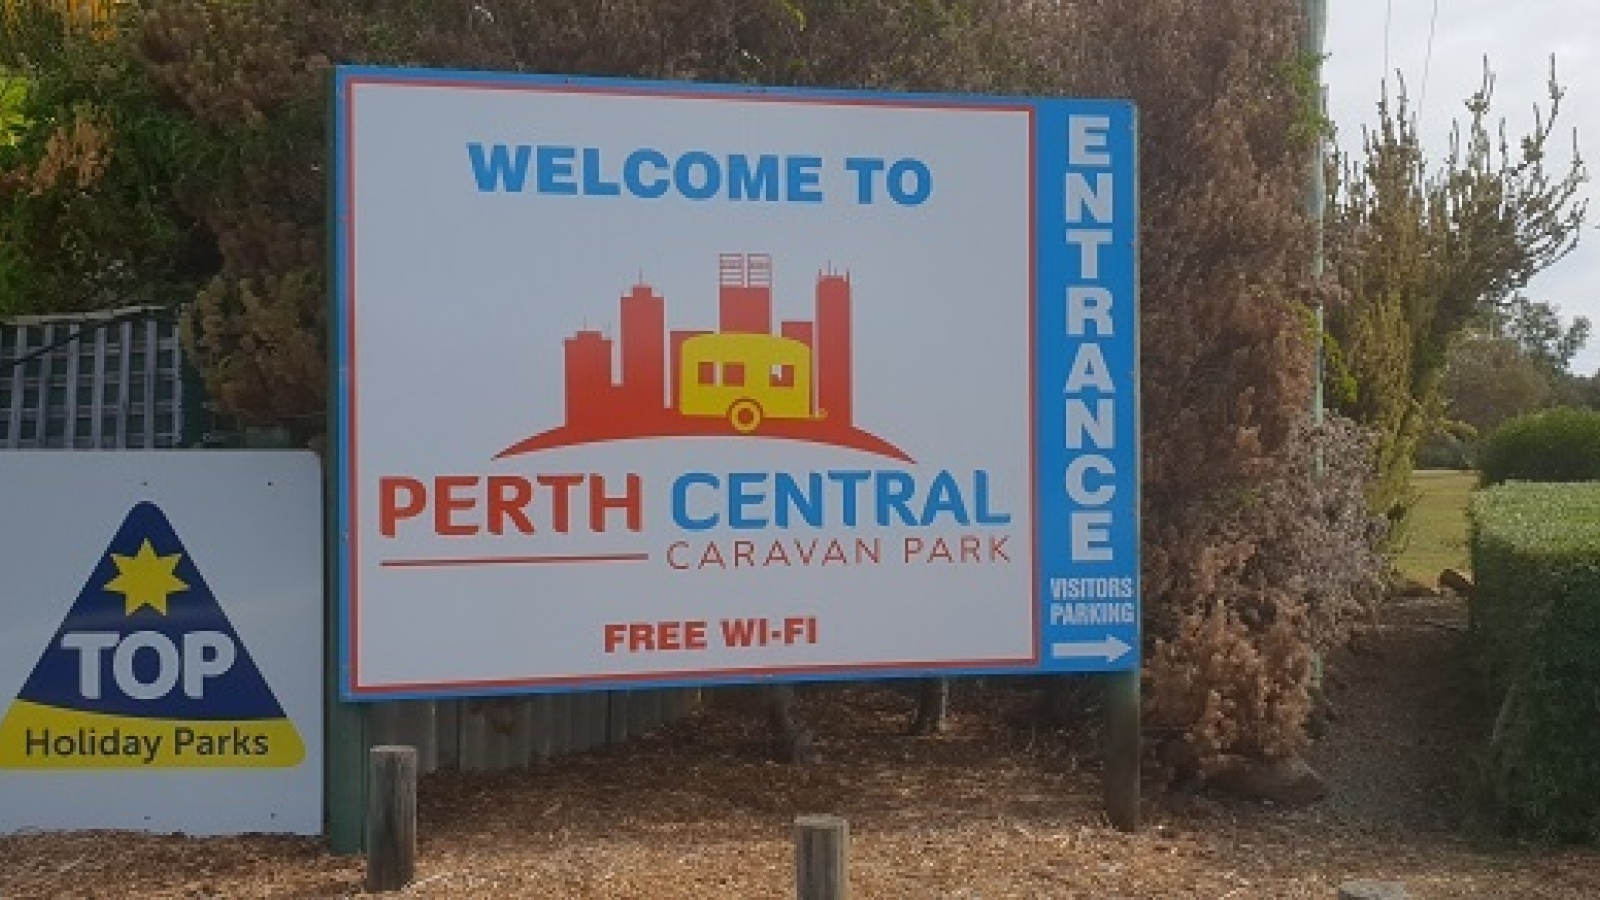 Perth Central Caravan Park Holiday Park, Perth, WA